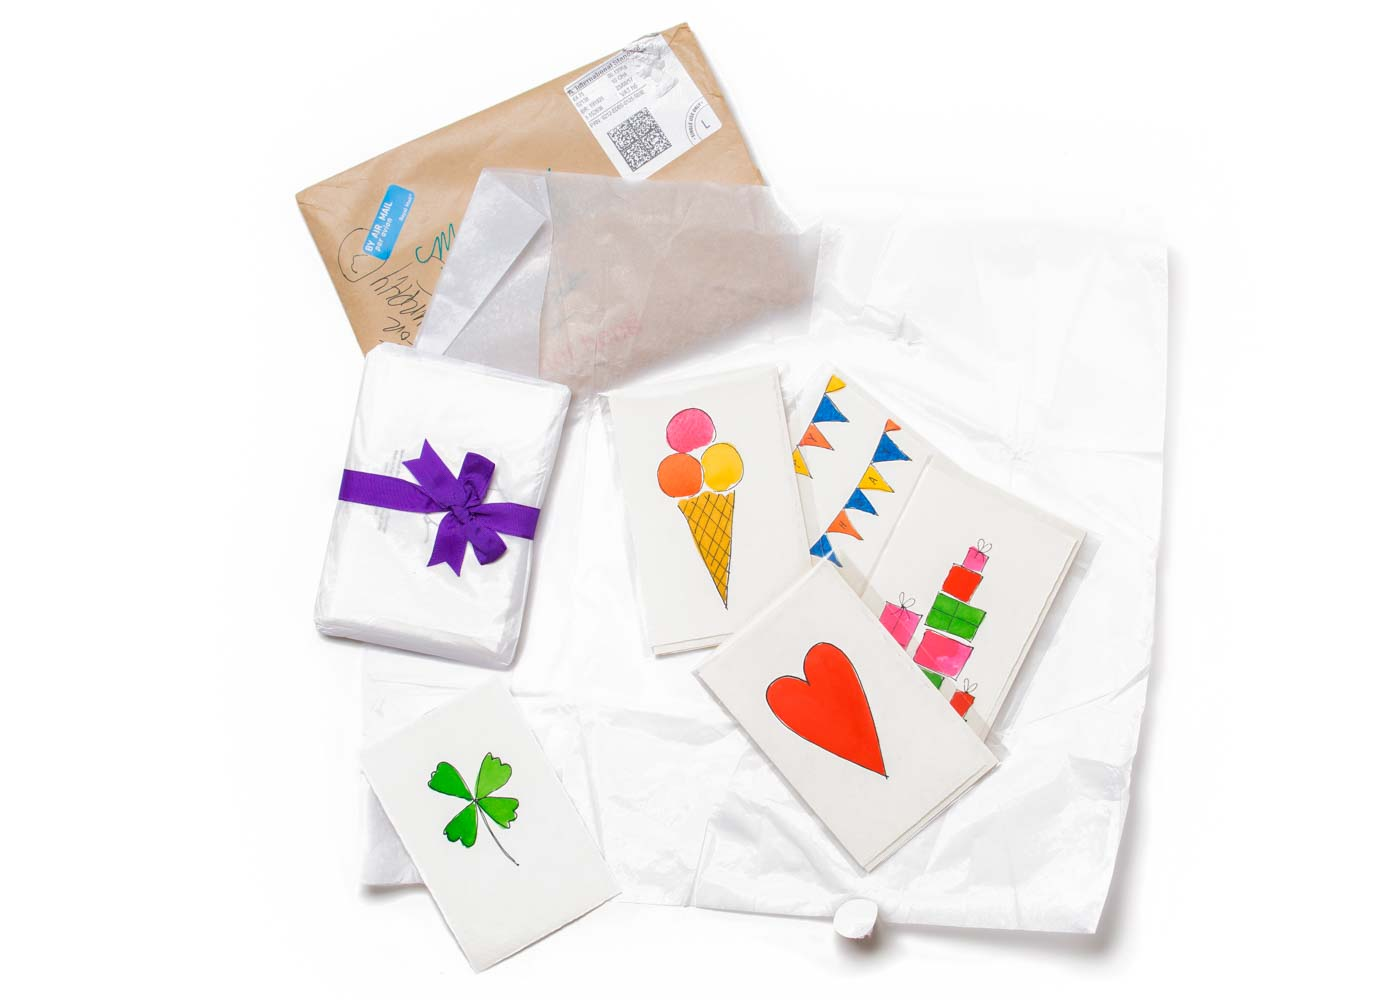 The lovely parcel of hand painted cards we received from Scribble & Daub.